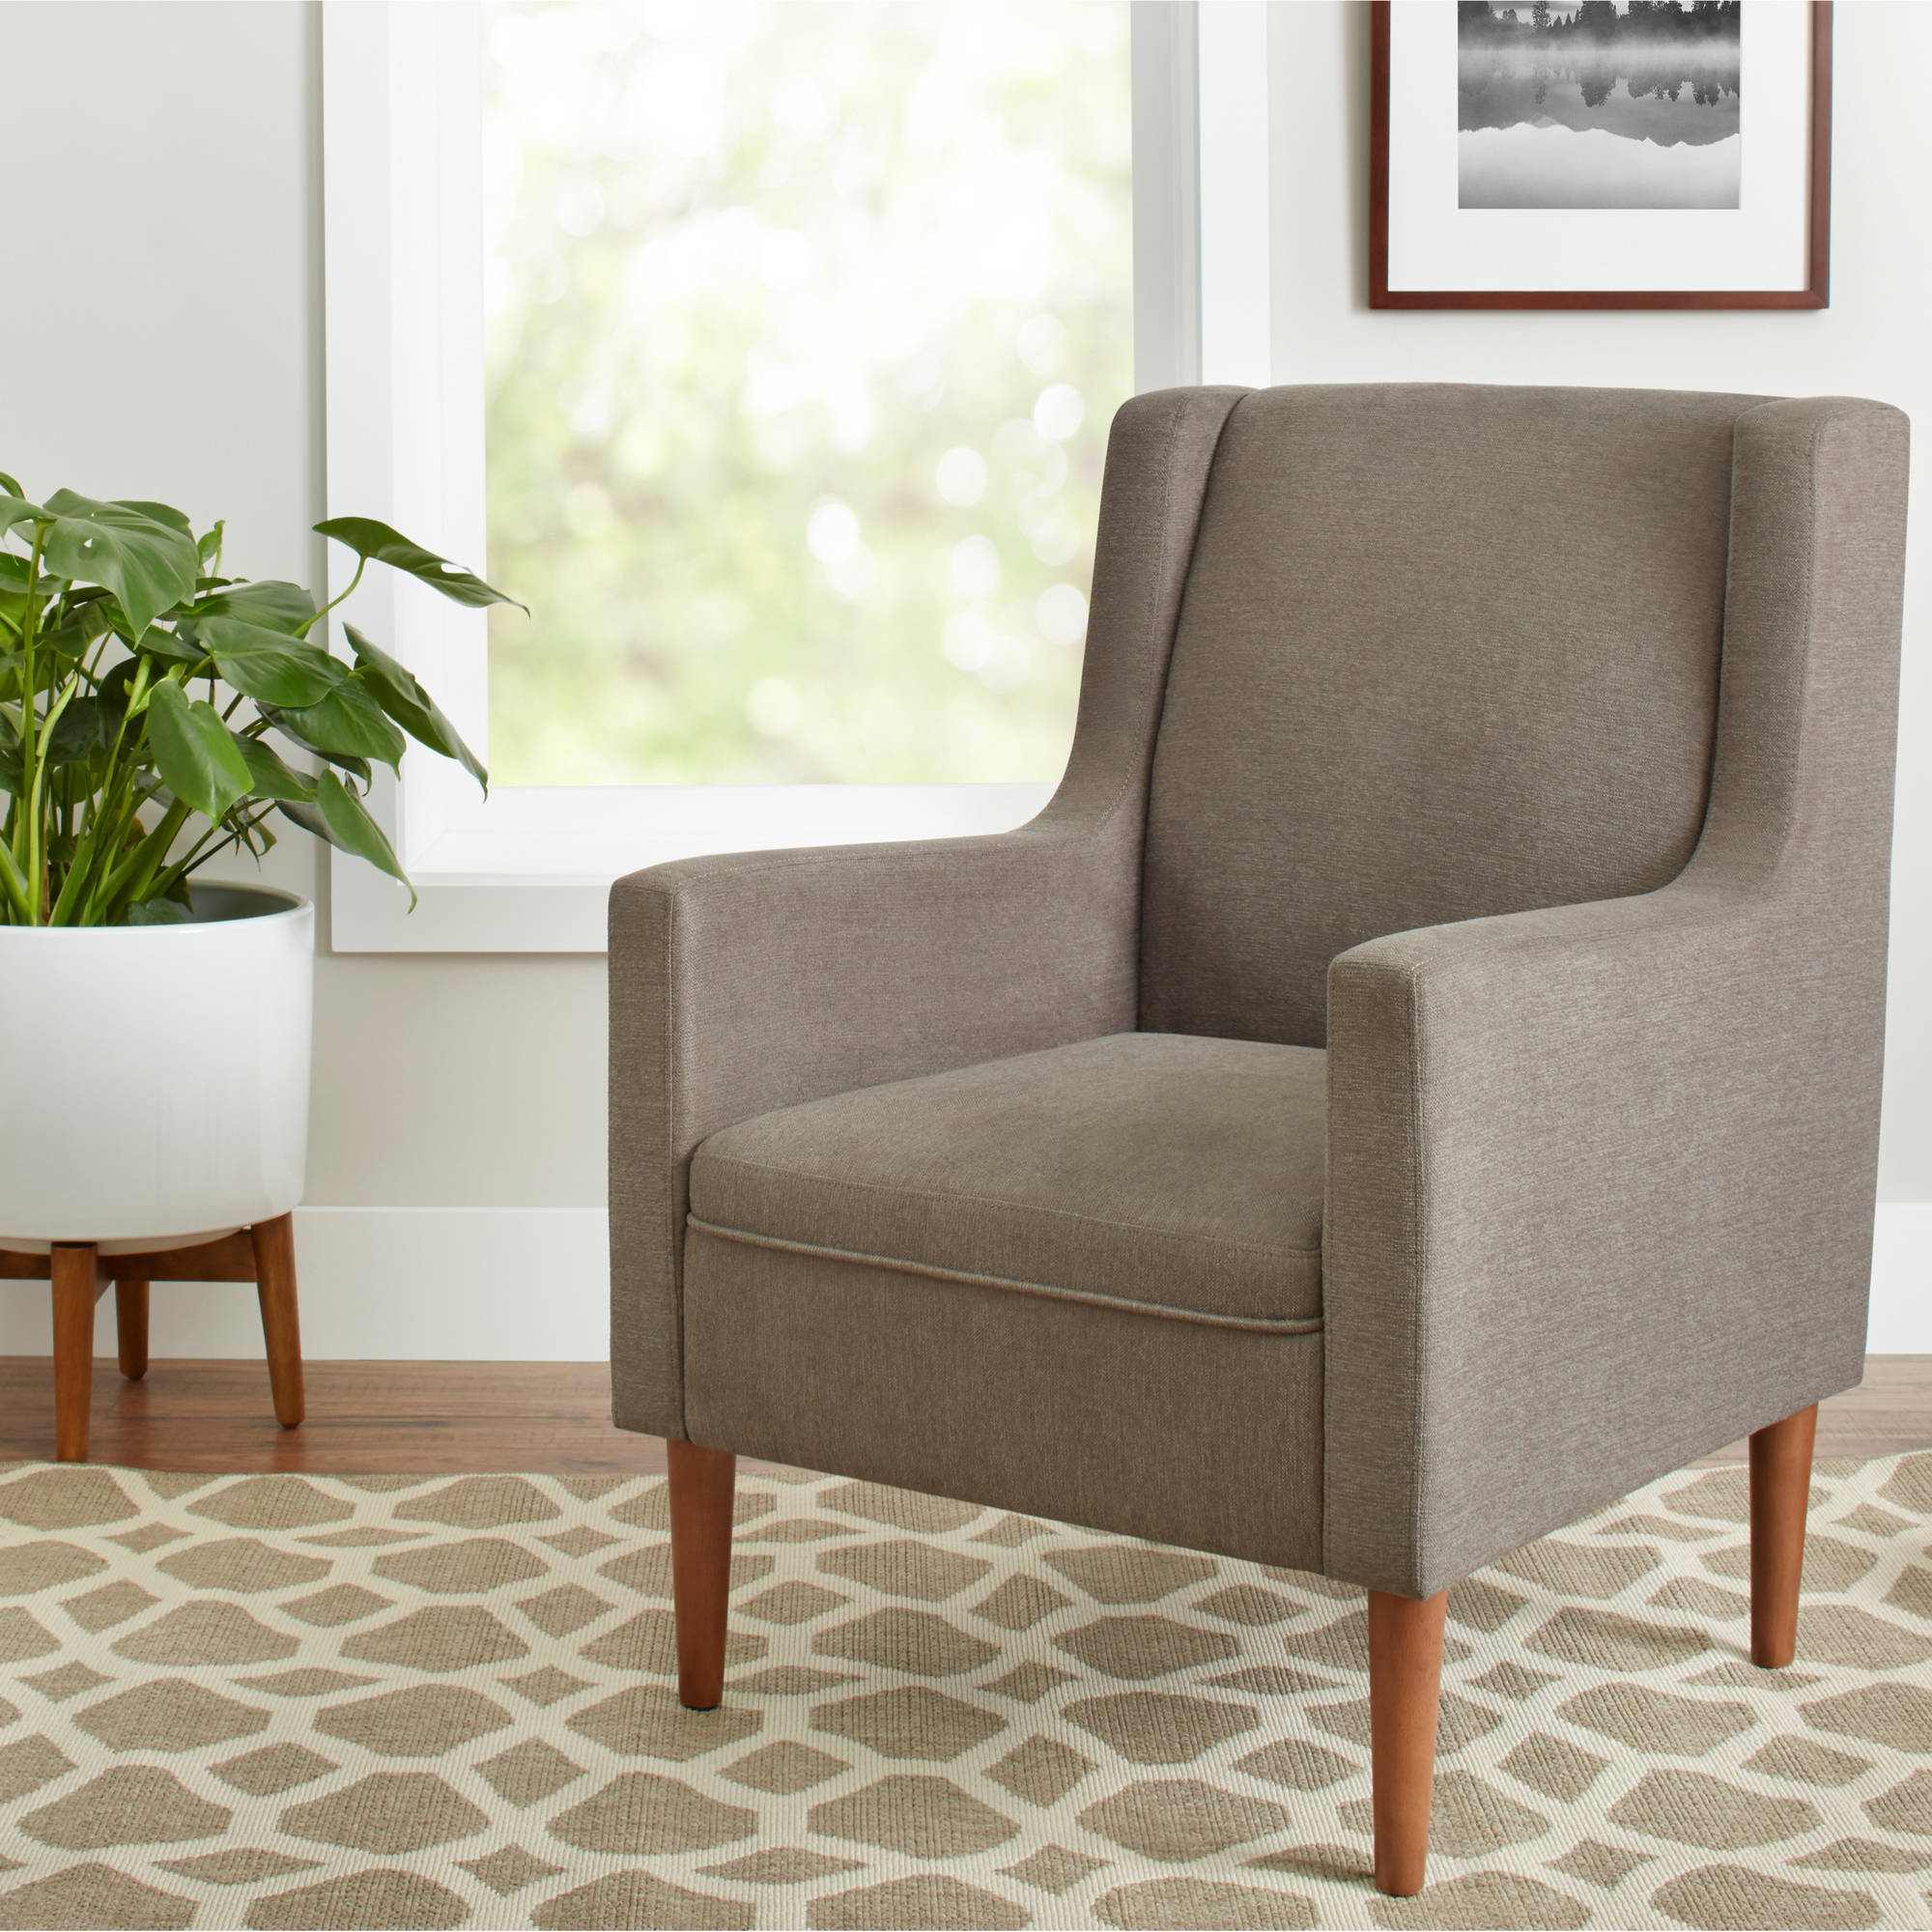 Better Homes and Gardens Flynn Mid Century Modern Lounge Chair, Multiple Colors